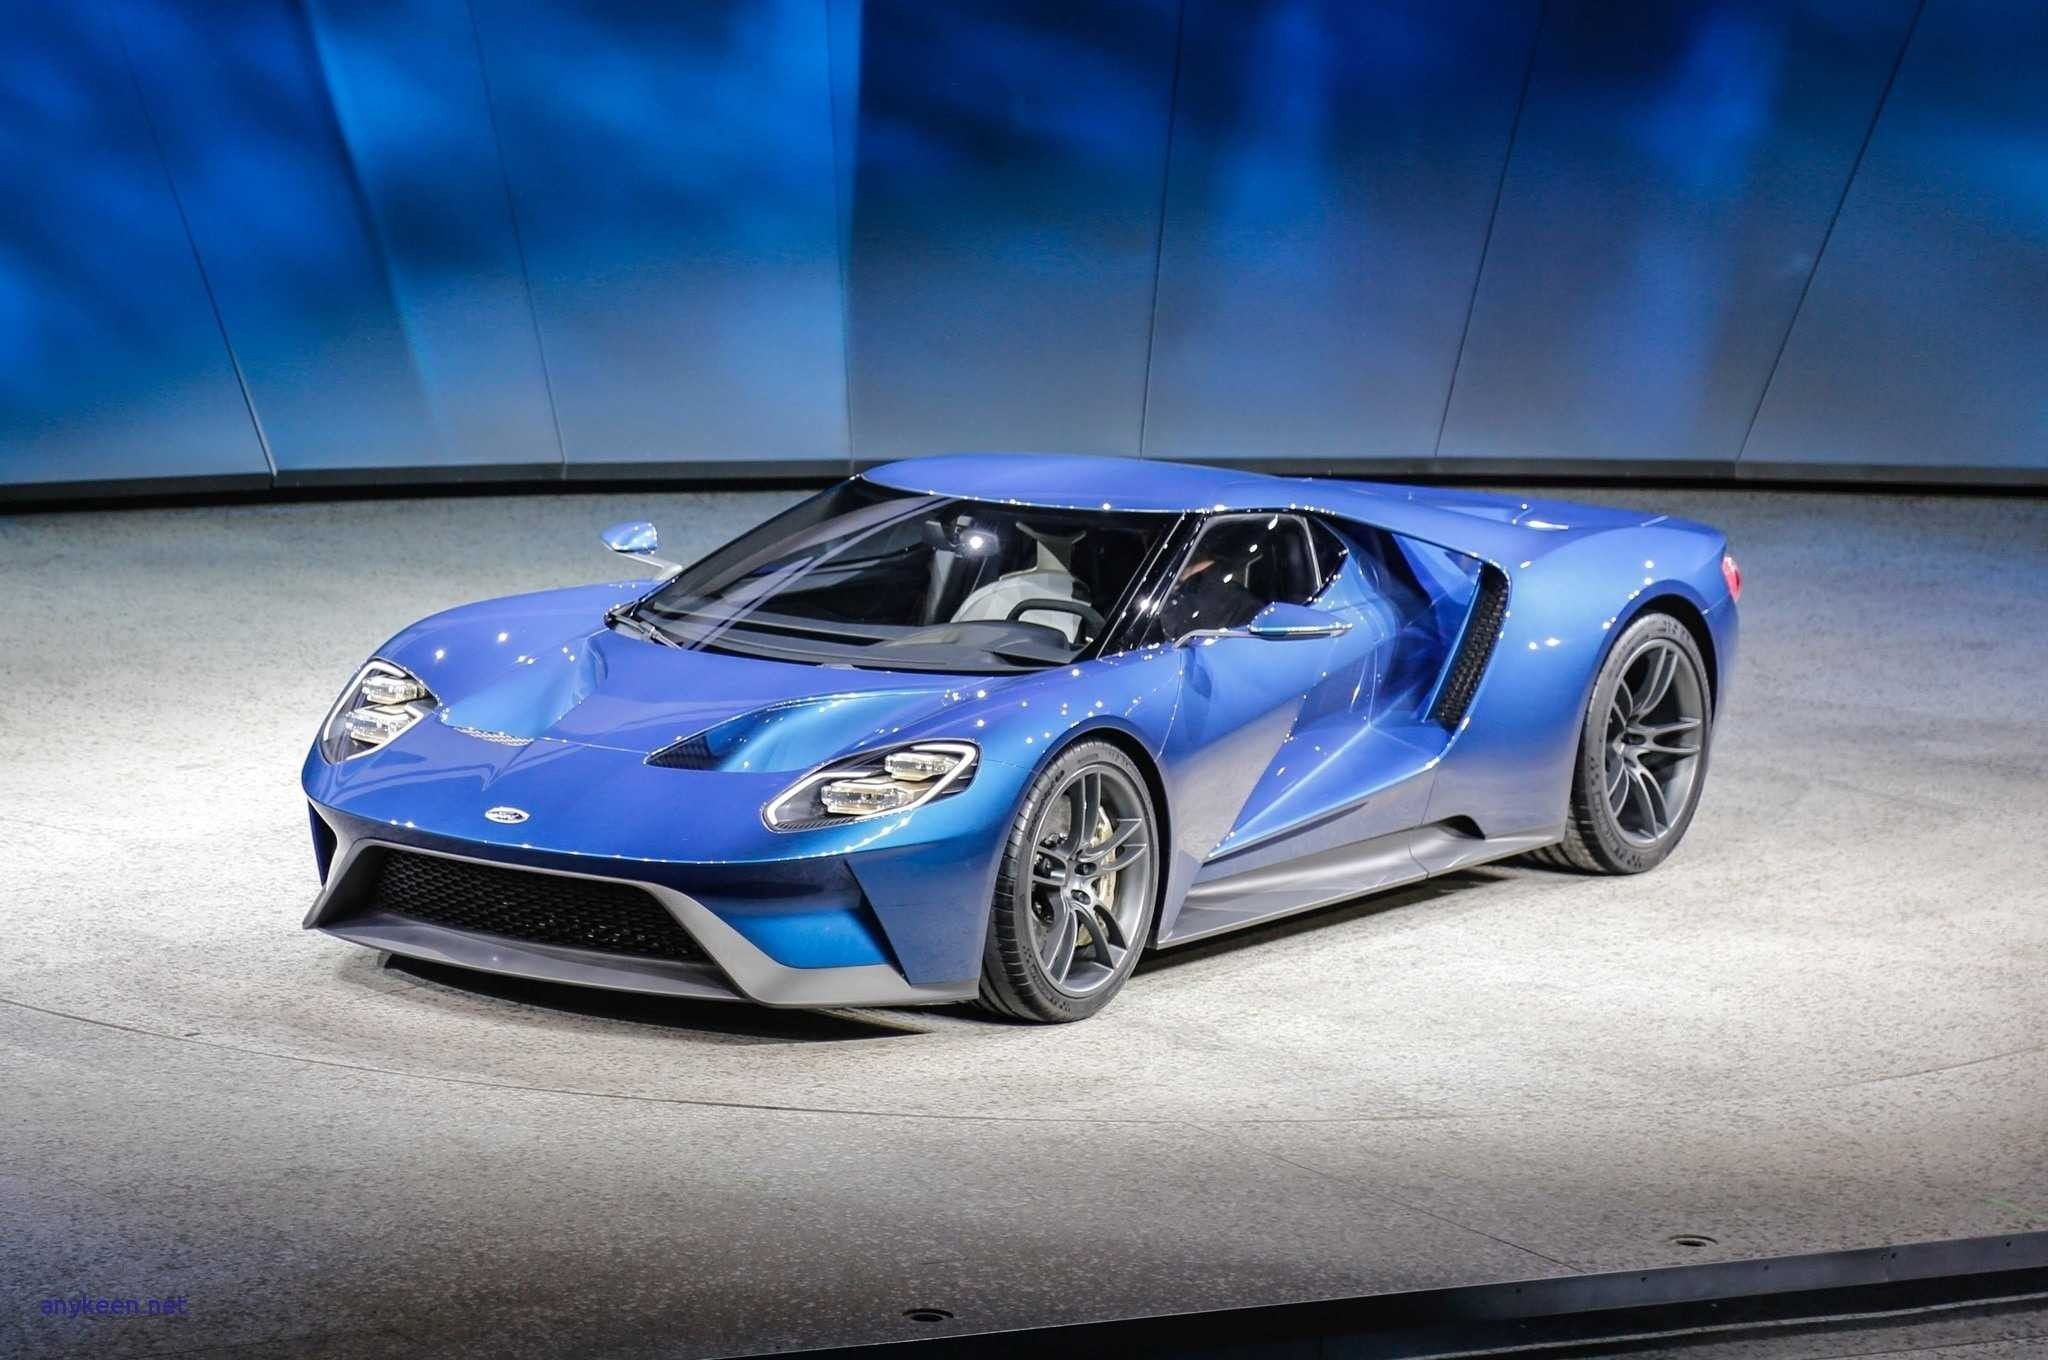 2019 Ford Gt Supercar Release Specs And Review Ford Gt Ford Gt 2015 Ford